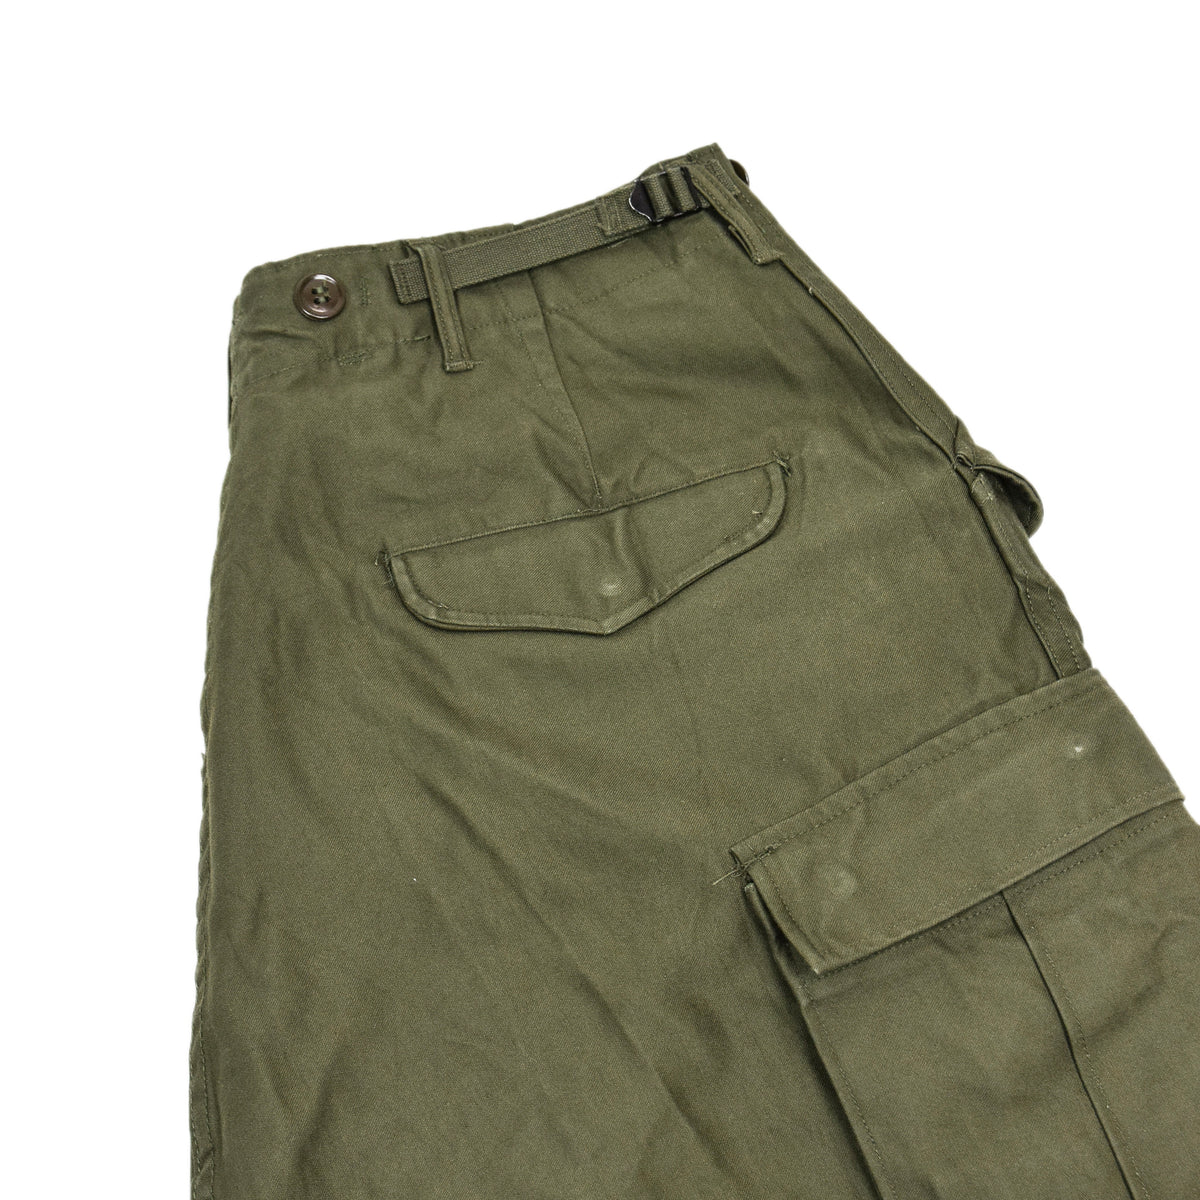 Vintage 50s US Army M-1951 Cotton Sateen OG-107 Shell Field Trousers M Reg  BACK POCKET